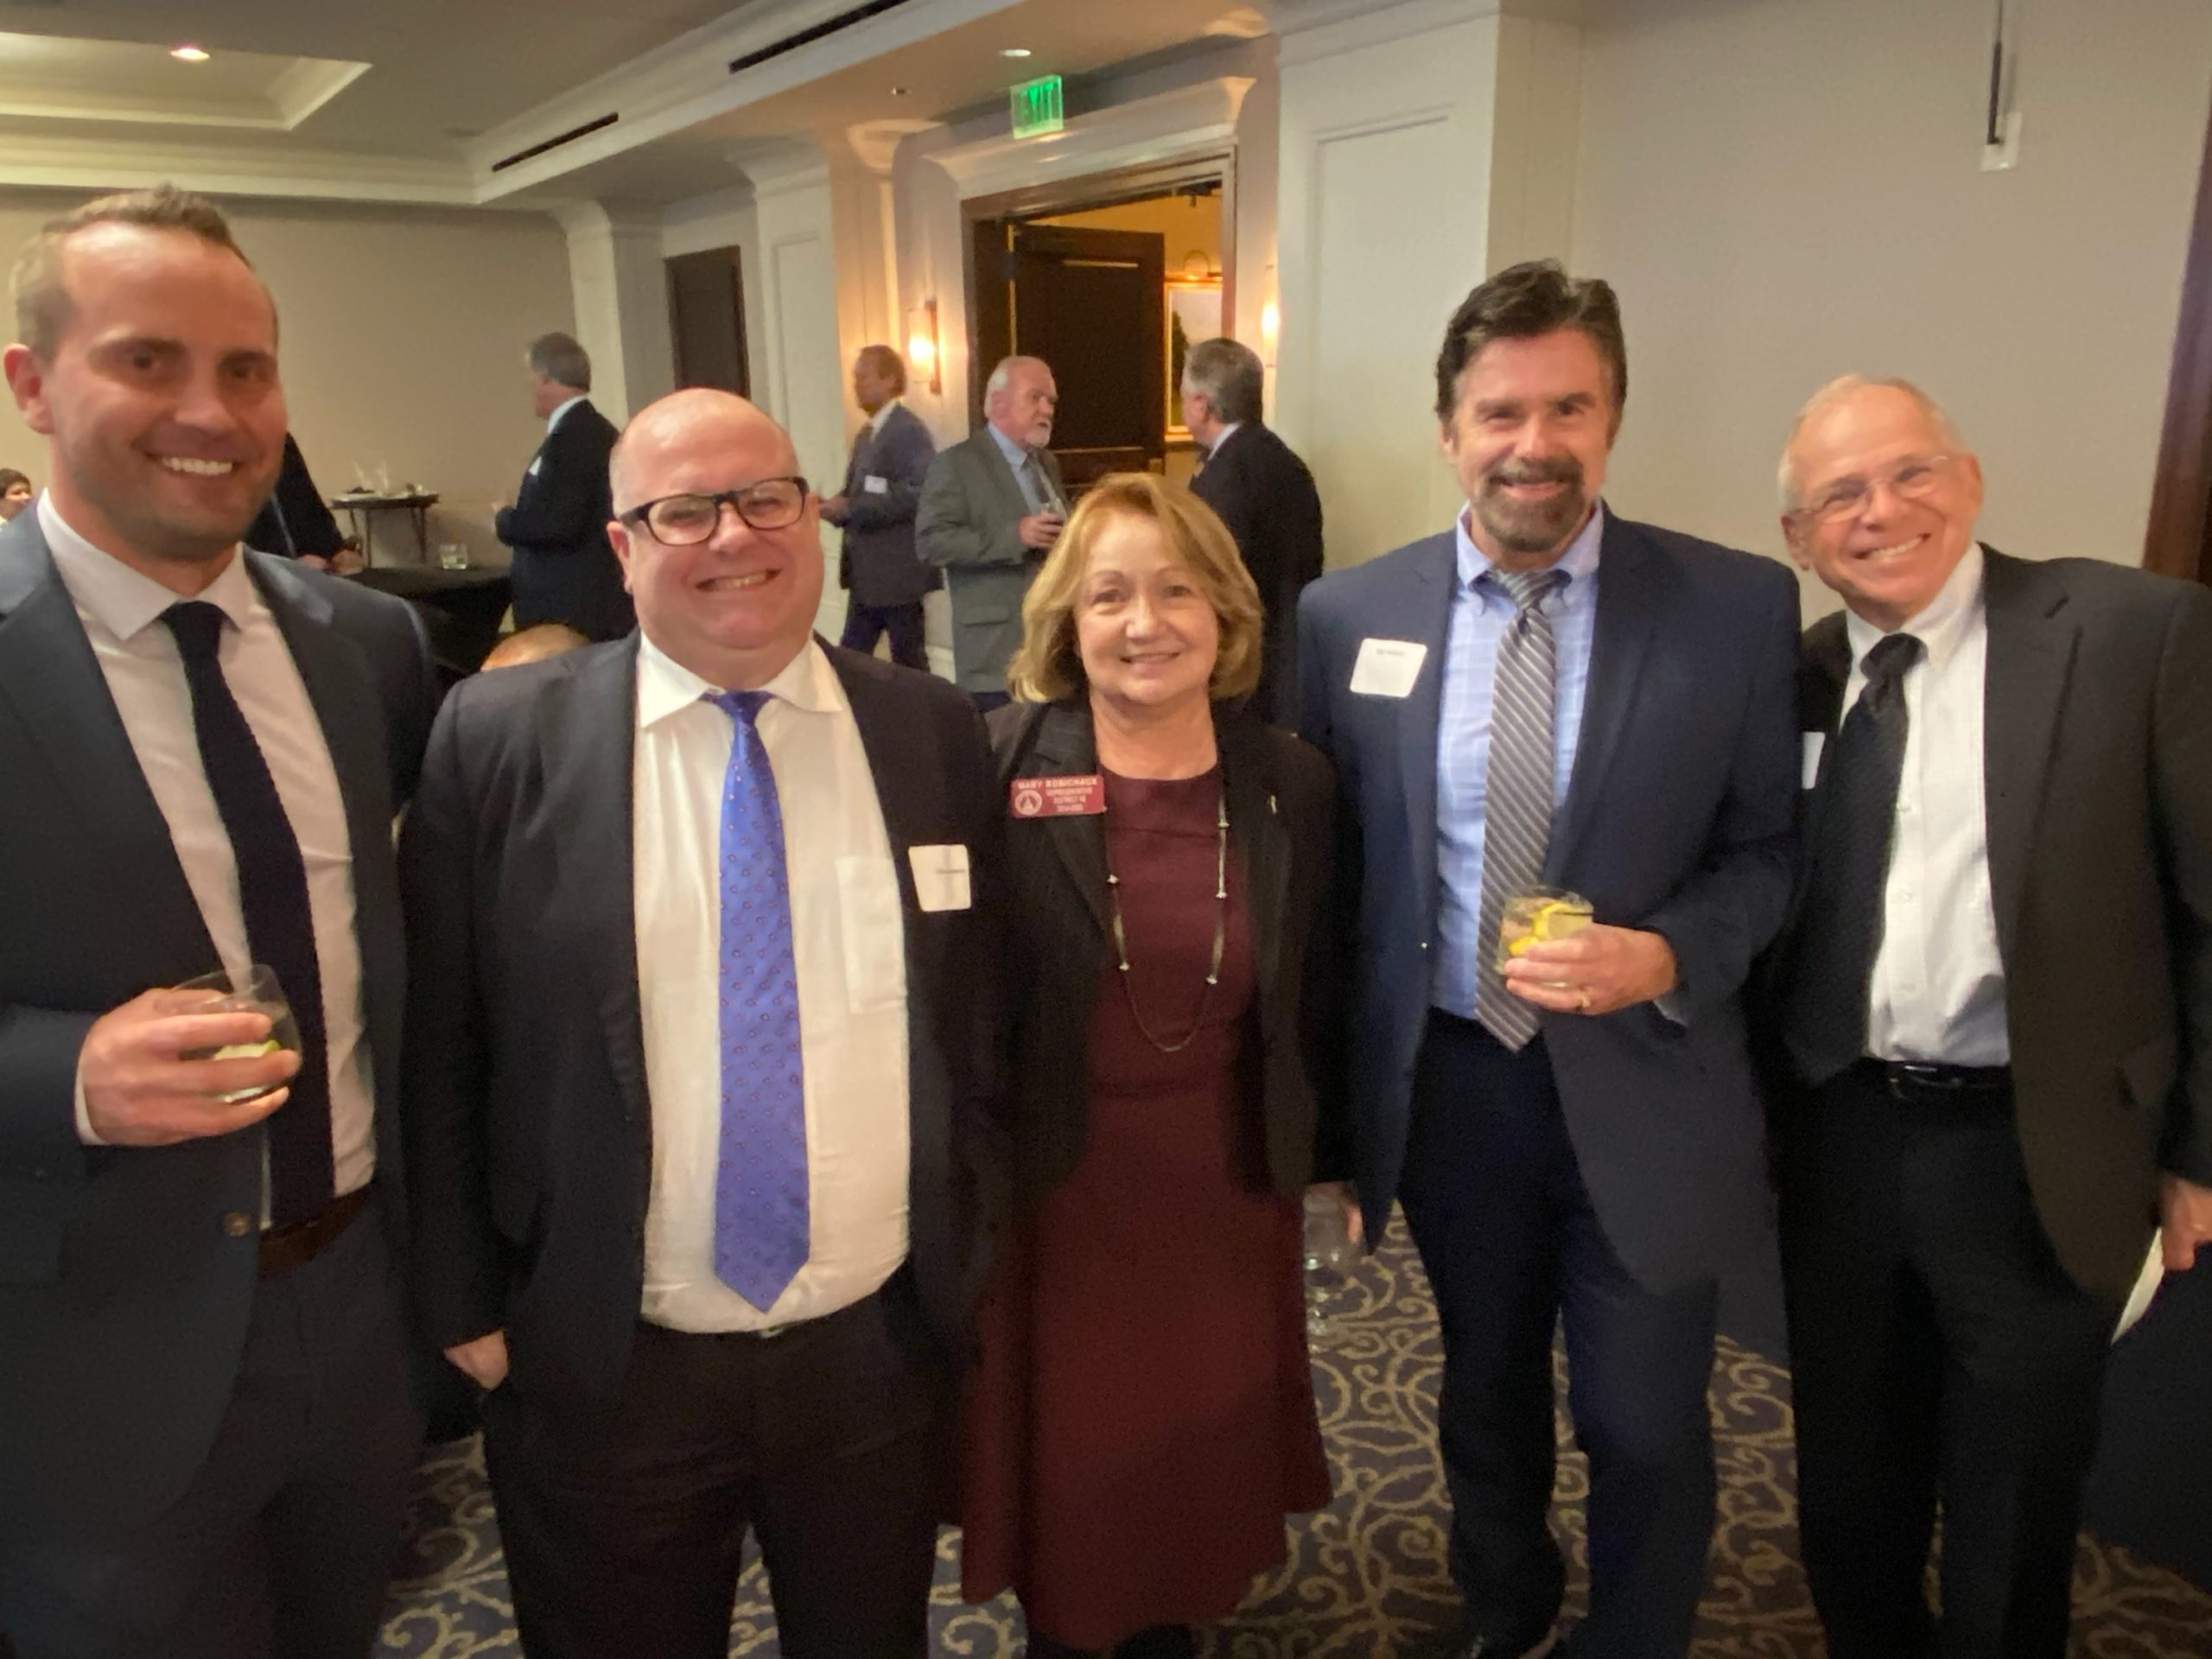 Robbie Jones of Coastal Electric, Chris Caiaccio of Kilpatrick Townsend, Senator Mary Robichaux, Niel Dawson and Tom Lemay of Metropower.